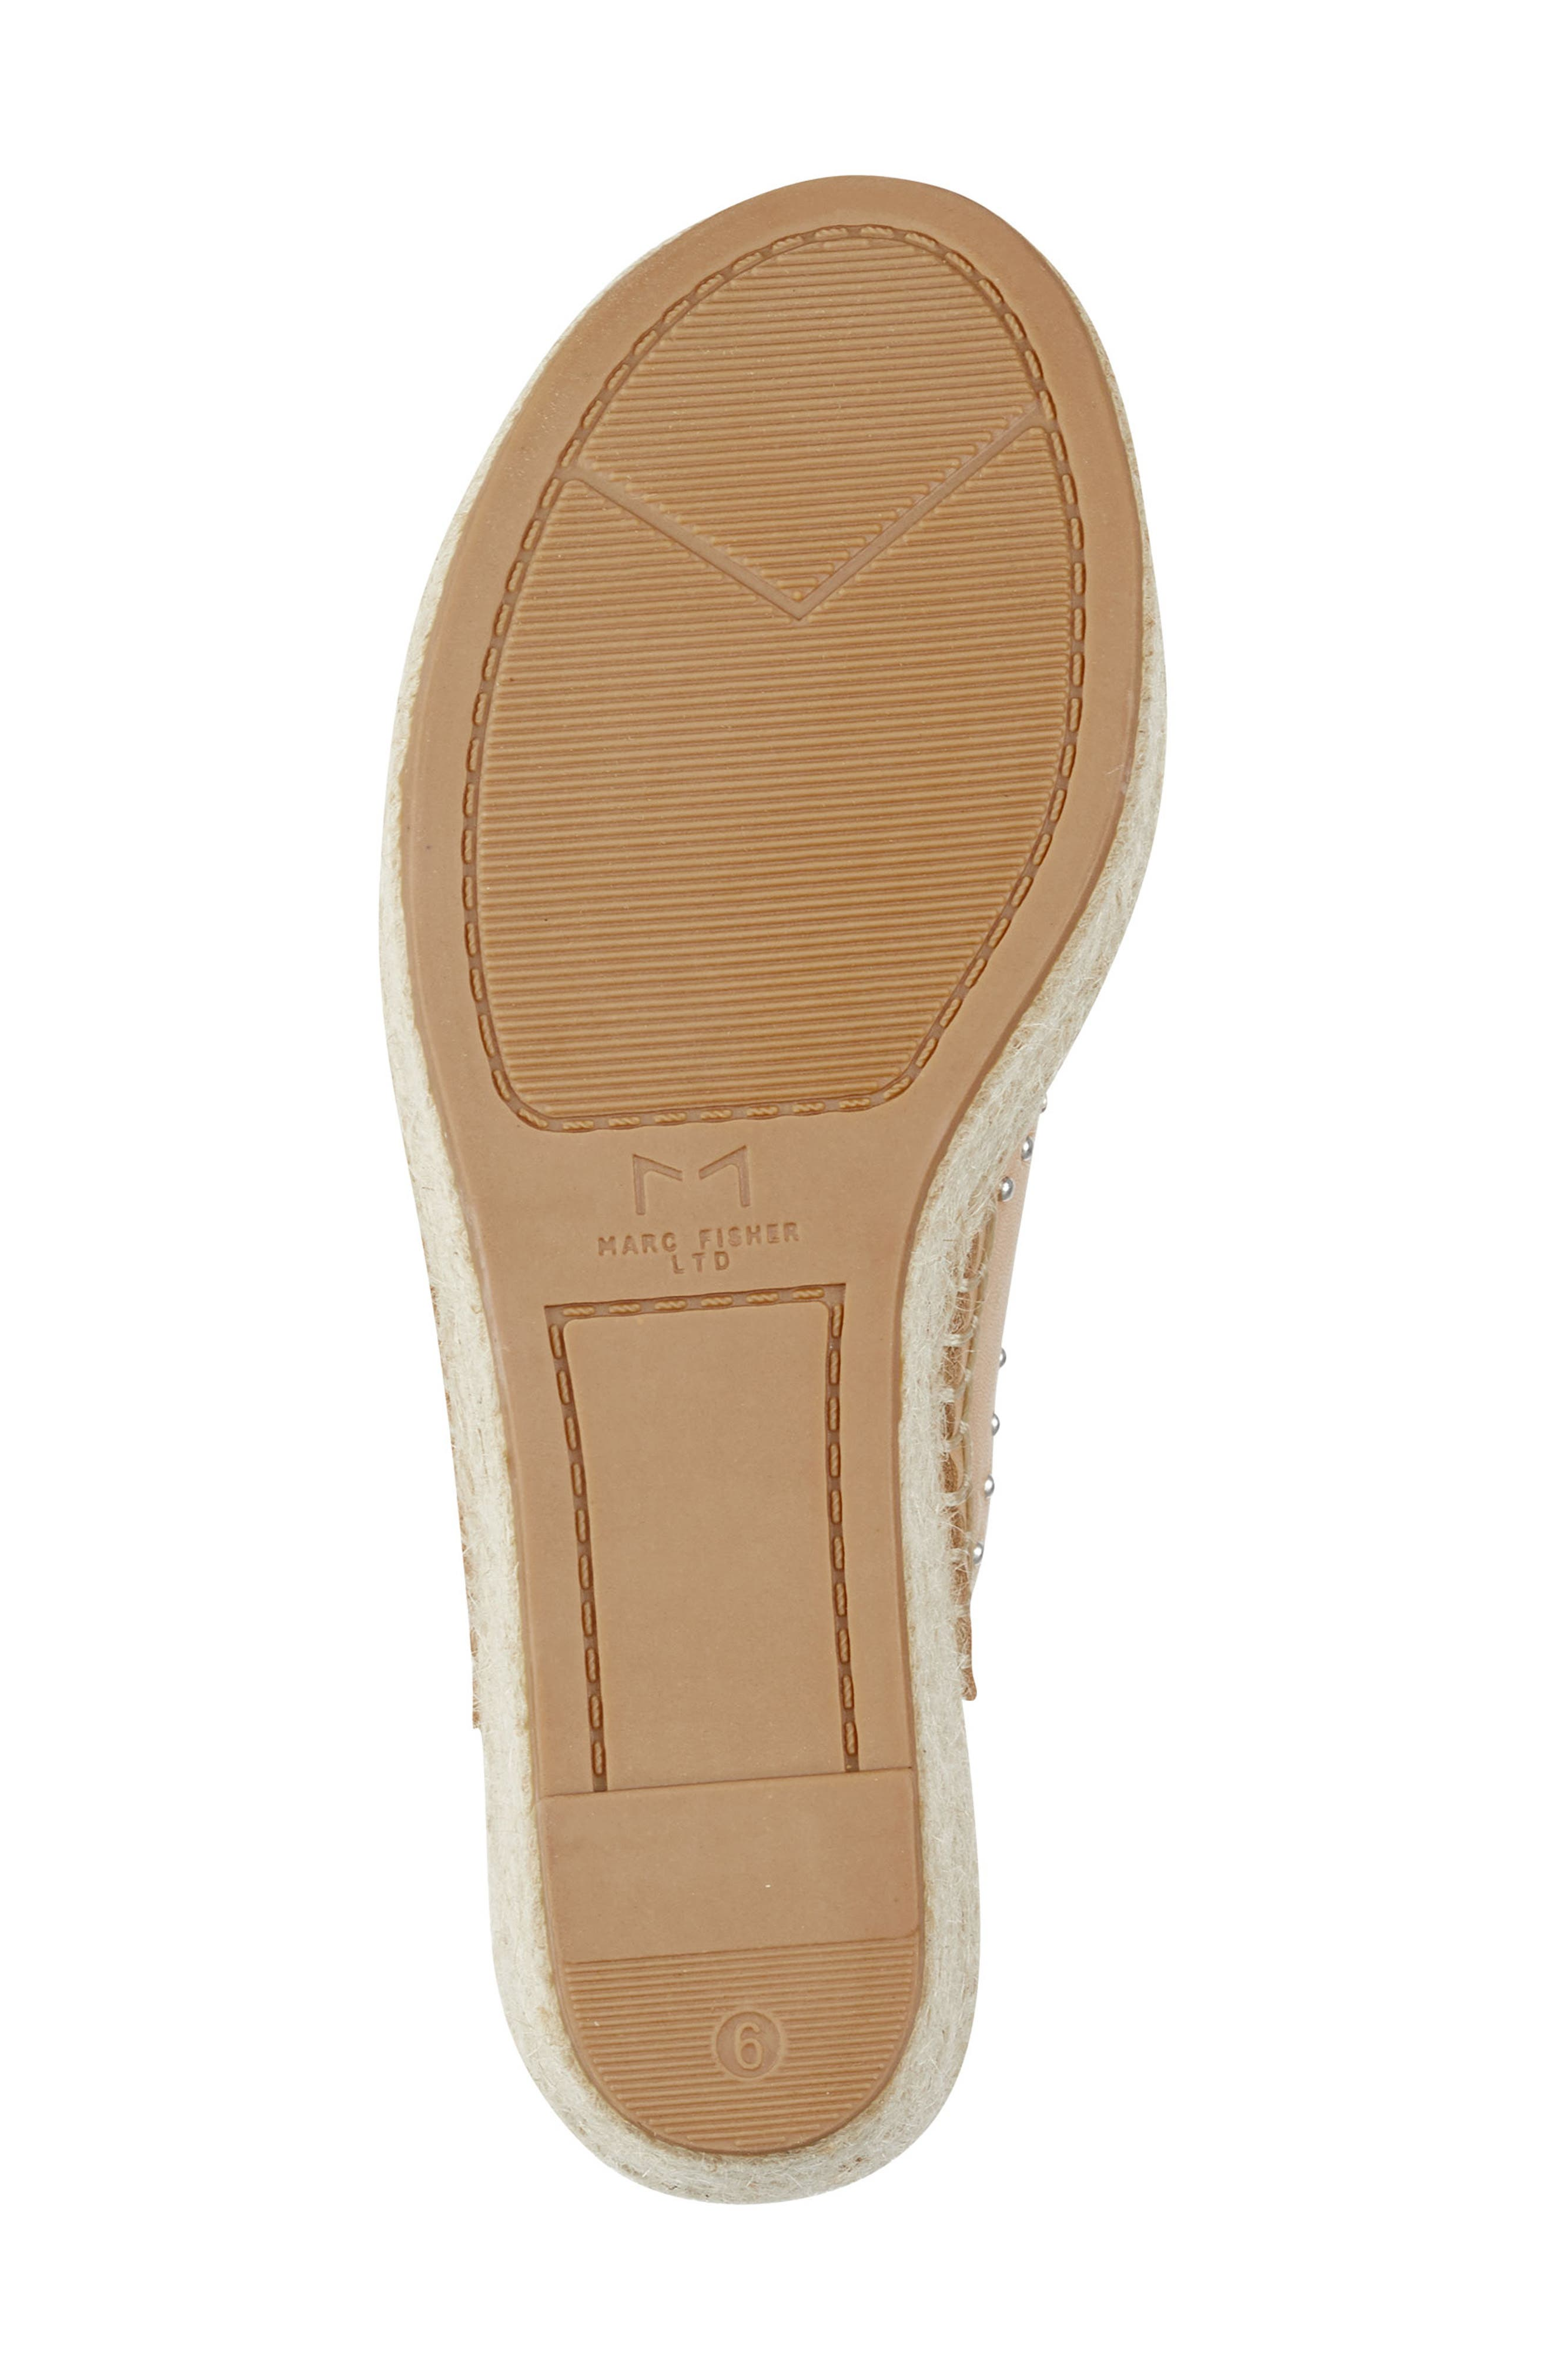 MARC FISHER LTD, Angelina Espadrille Wedge, Alternate thumbnail 6, color, TAN LEATHER